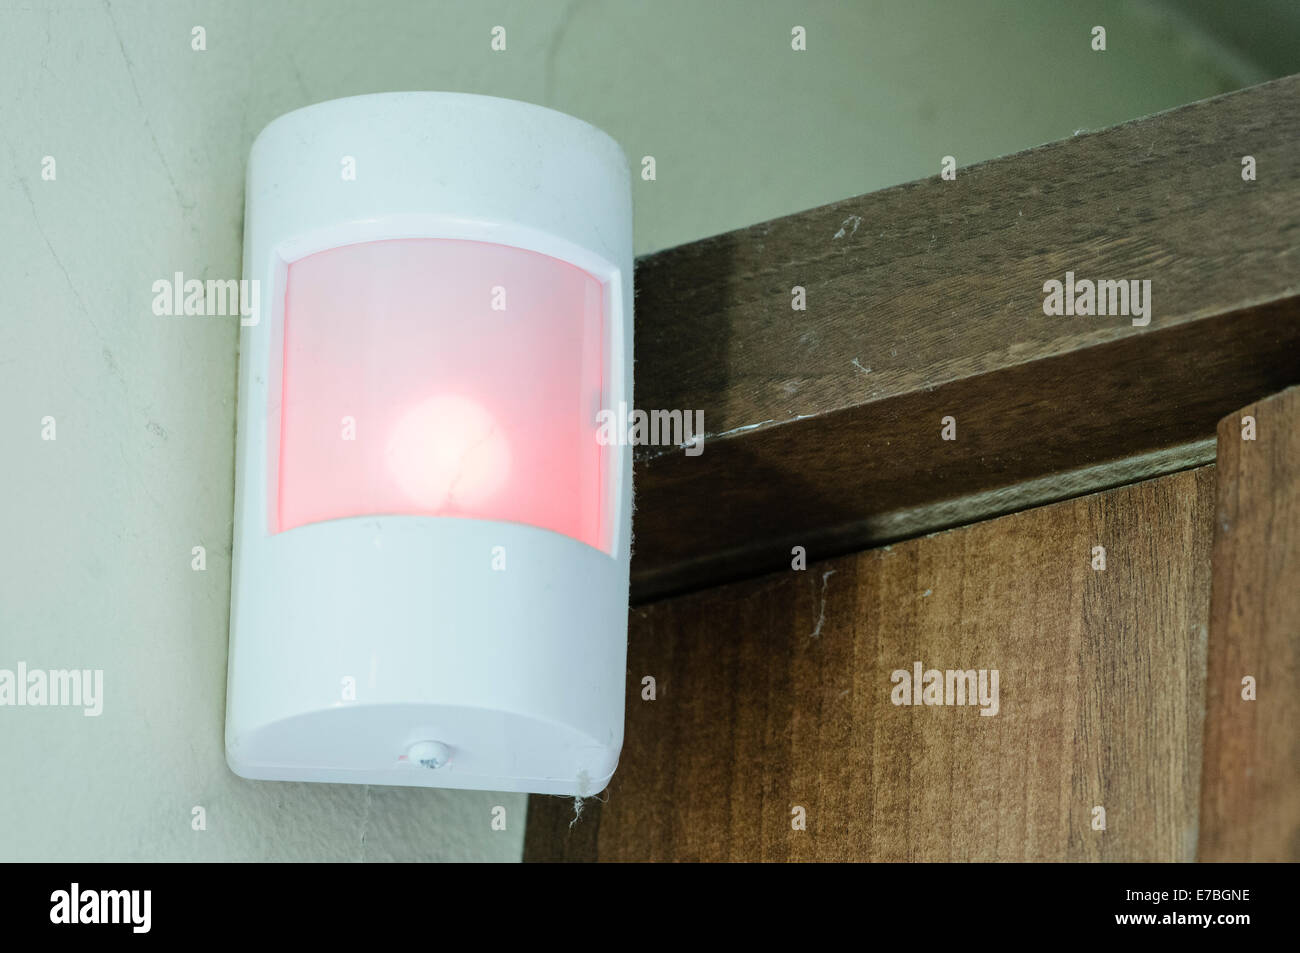 A passive Infra Red (PIR) detector as part of a household alarm system - Stock Image